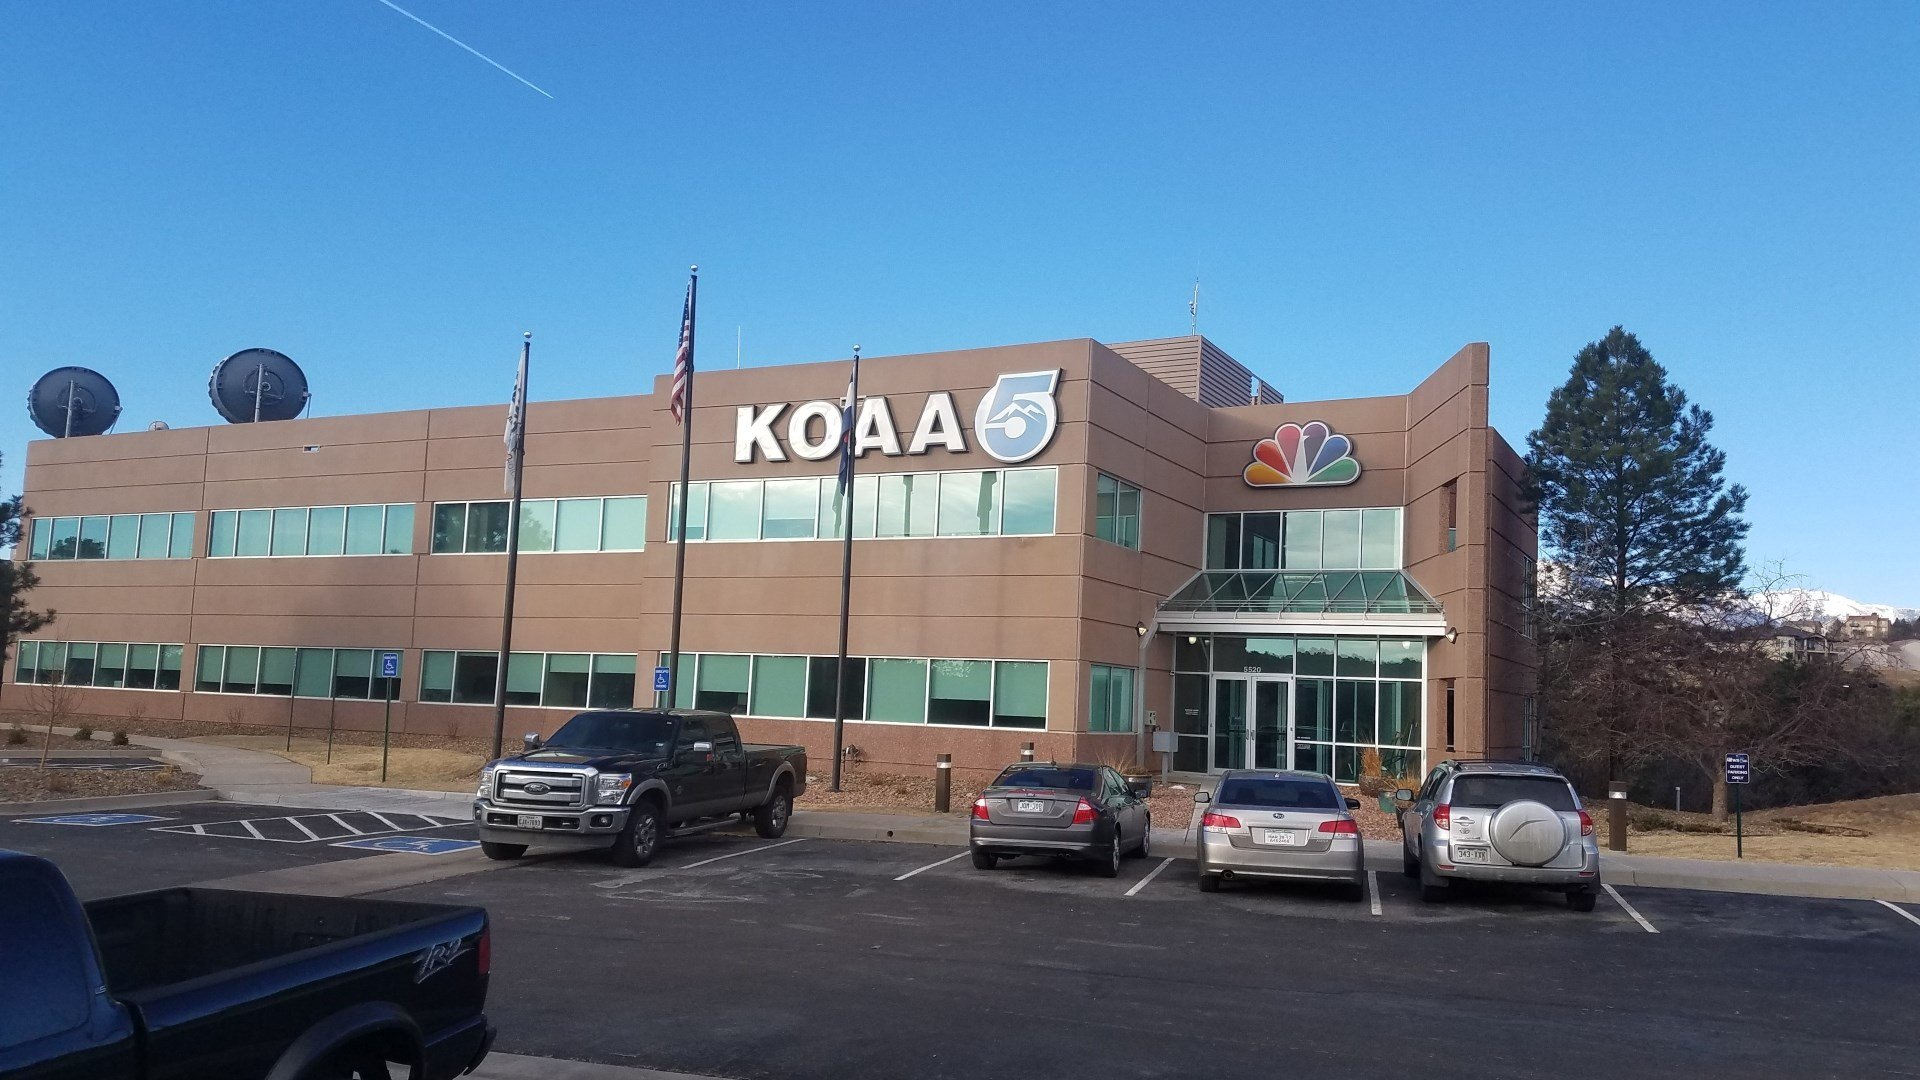 KOAA News 5 studios in Colorado Springs (2017)